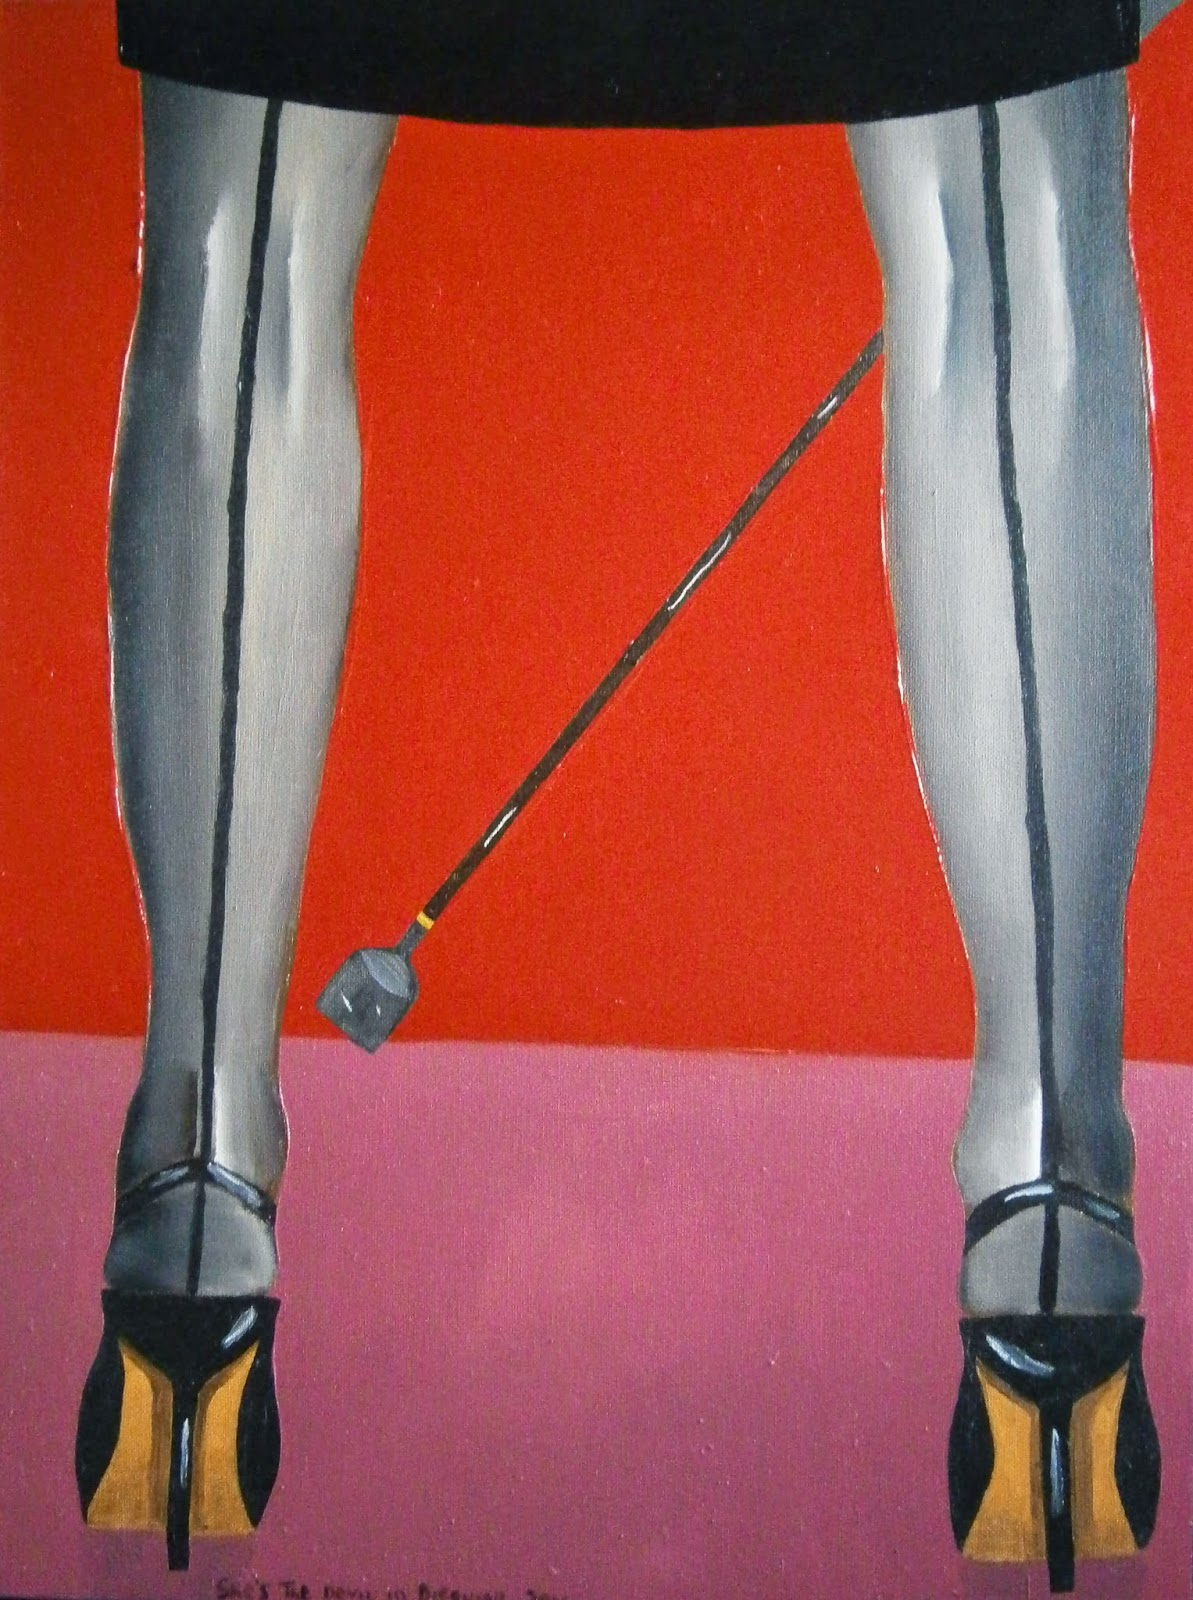 A dominatrix wearing black seamed stockings and holding a riding whip